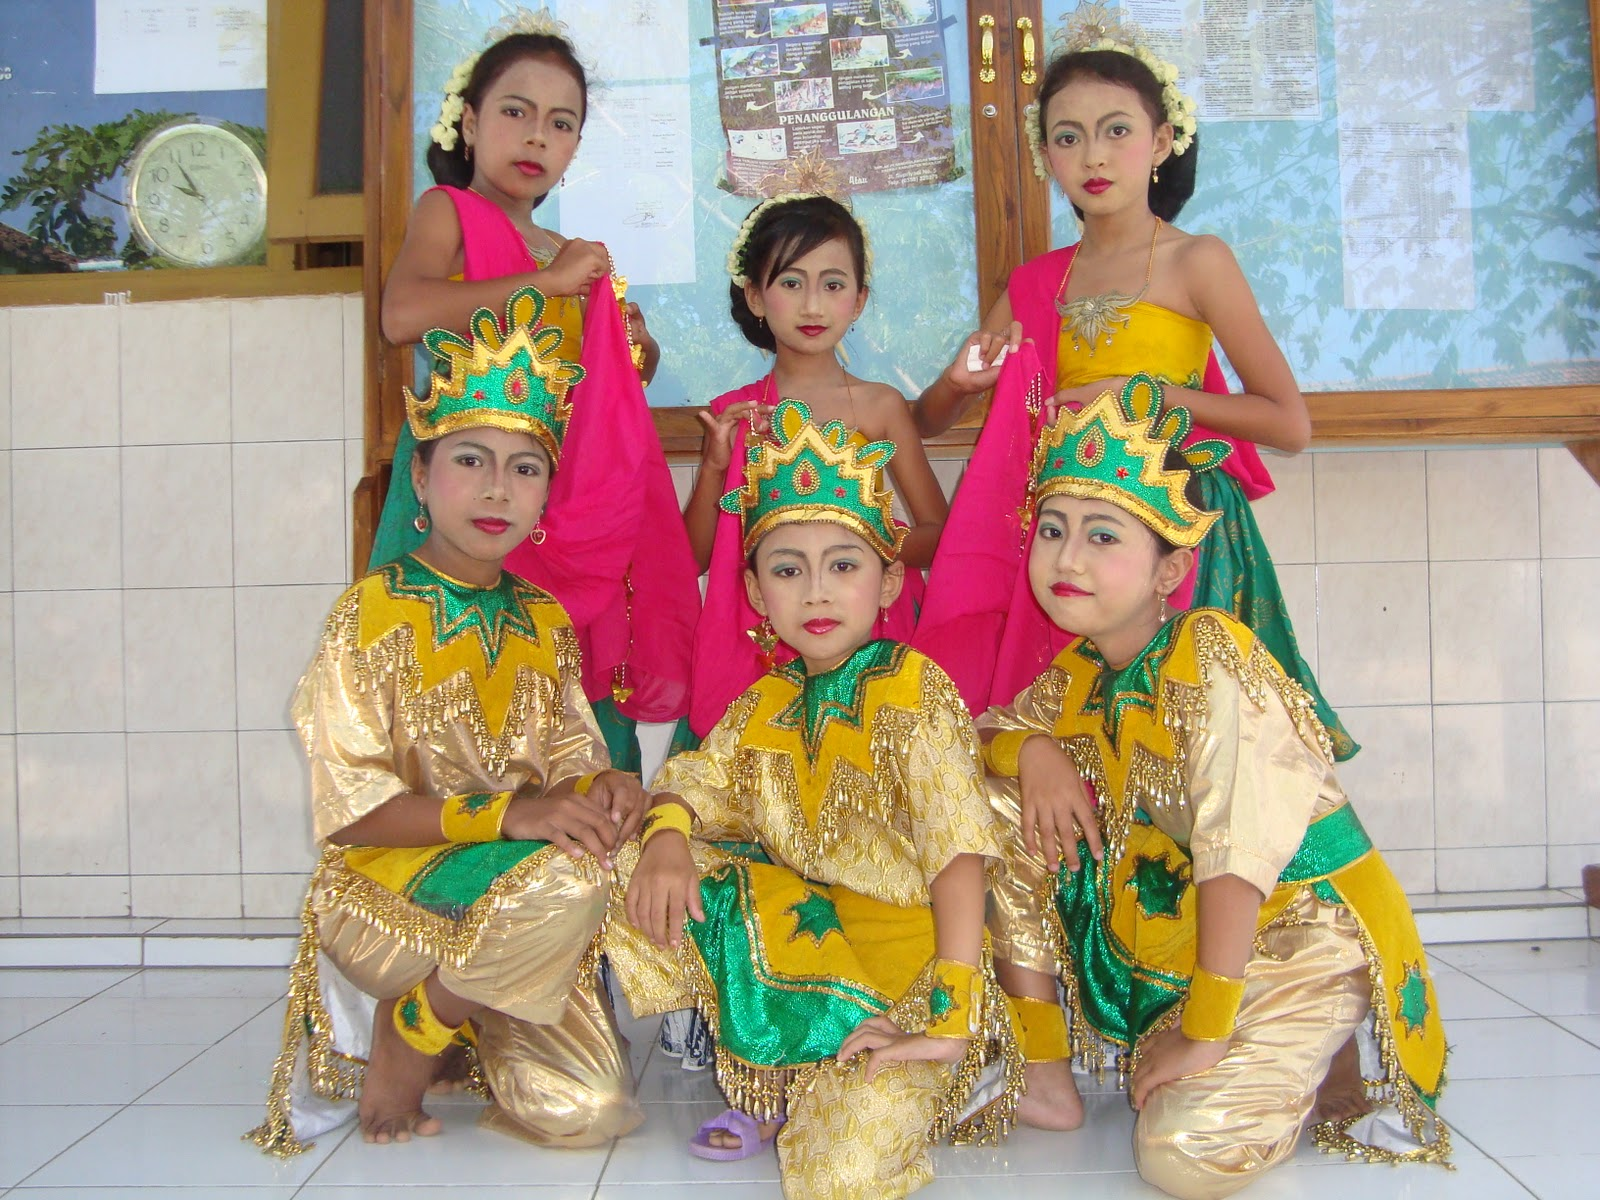 Home » Search Results for: Jenis Jenis Tarian Tradisional Nusantara ...